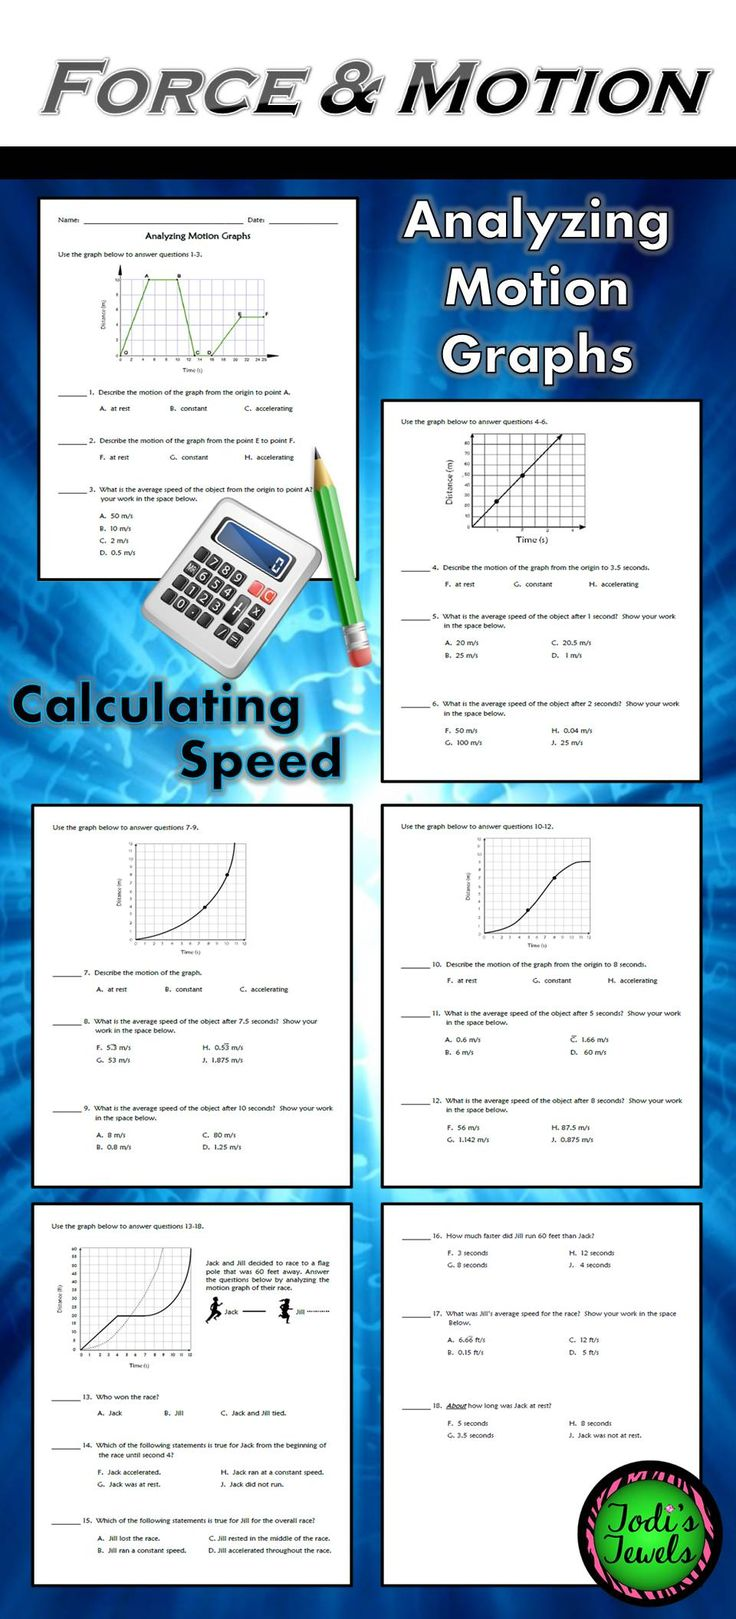 Analyzing Motion Graphs & Calculating Speed WS Physical